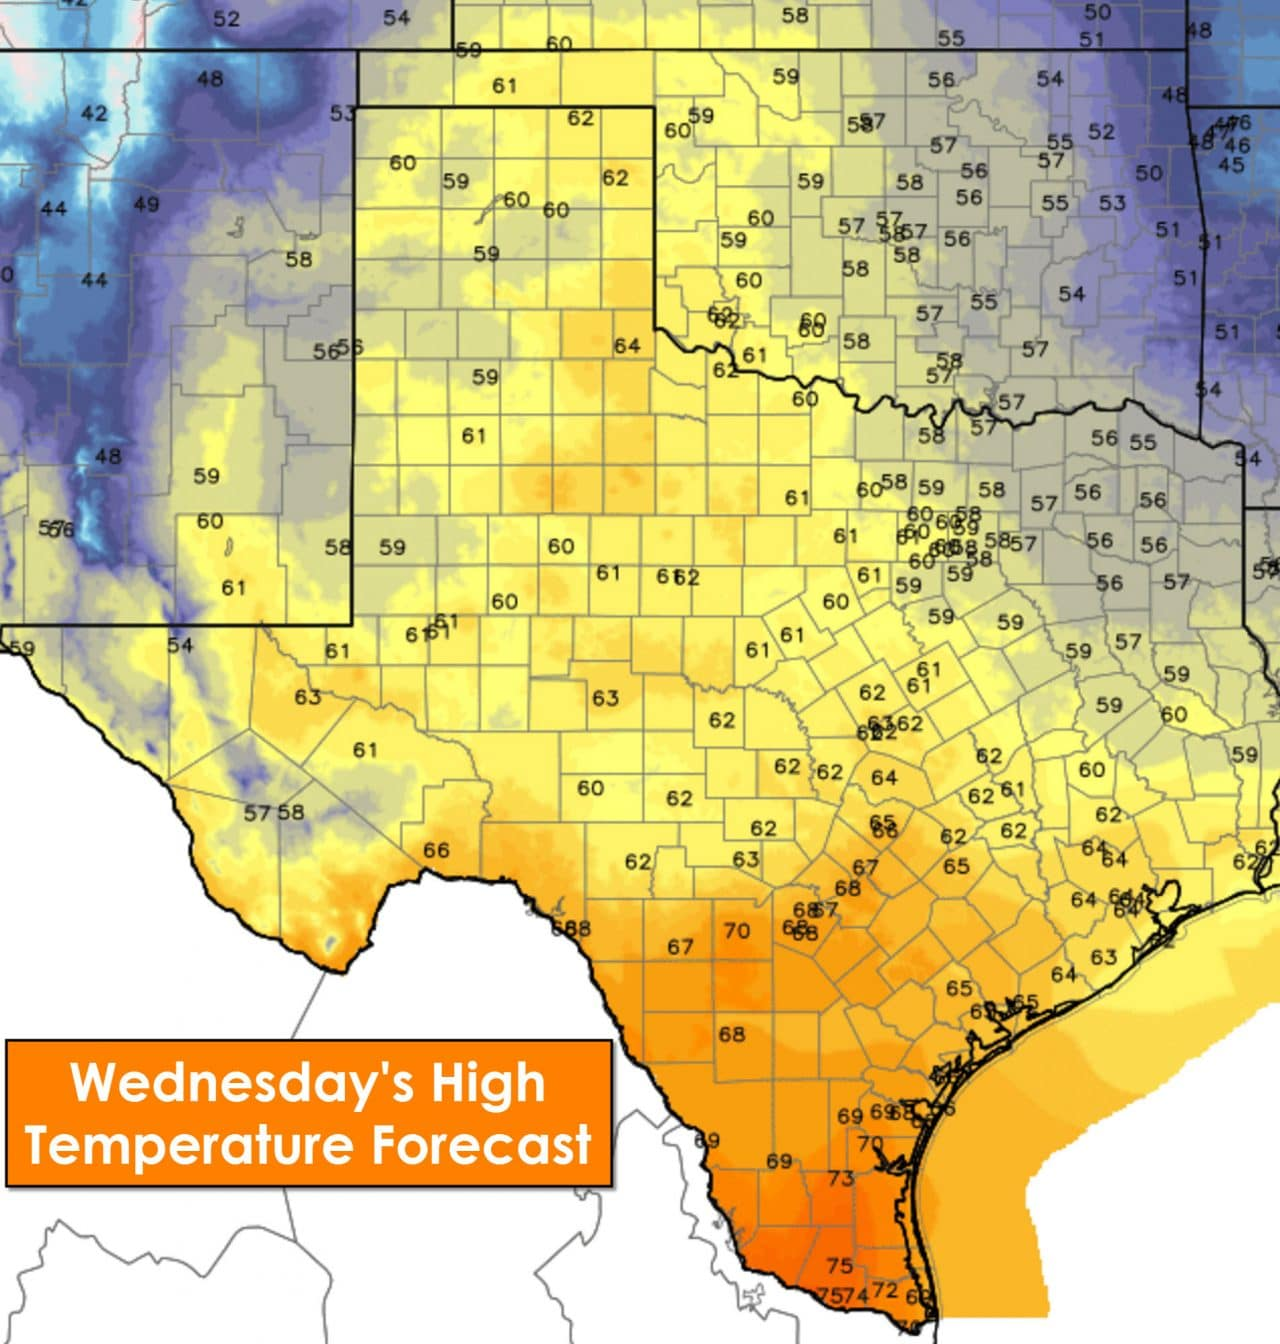 Sunny Skies & Breezy Today with Seasonal Temperatures